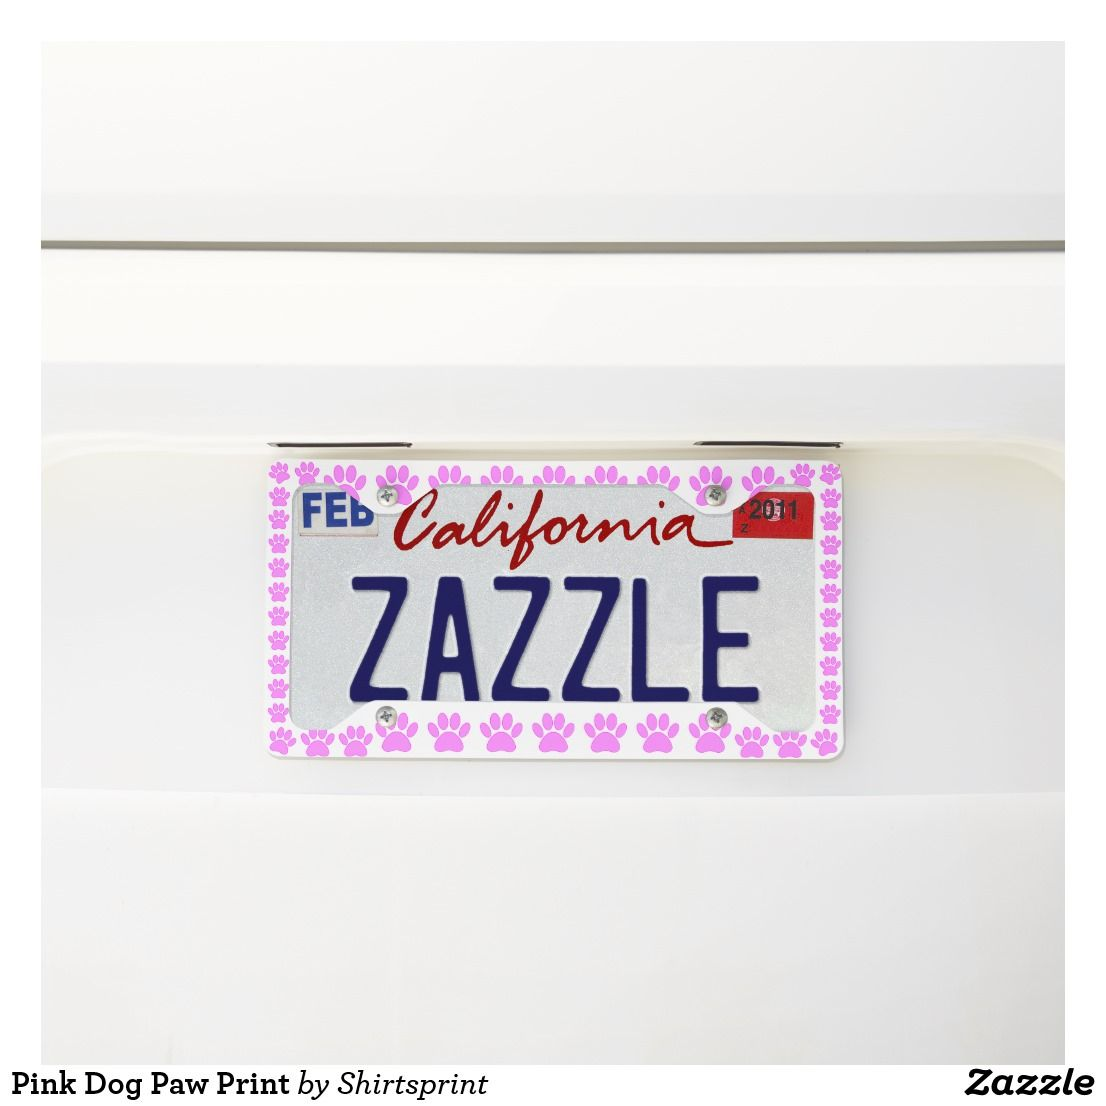 Pink Dog Paw Print License Plate Frame